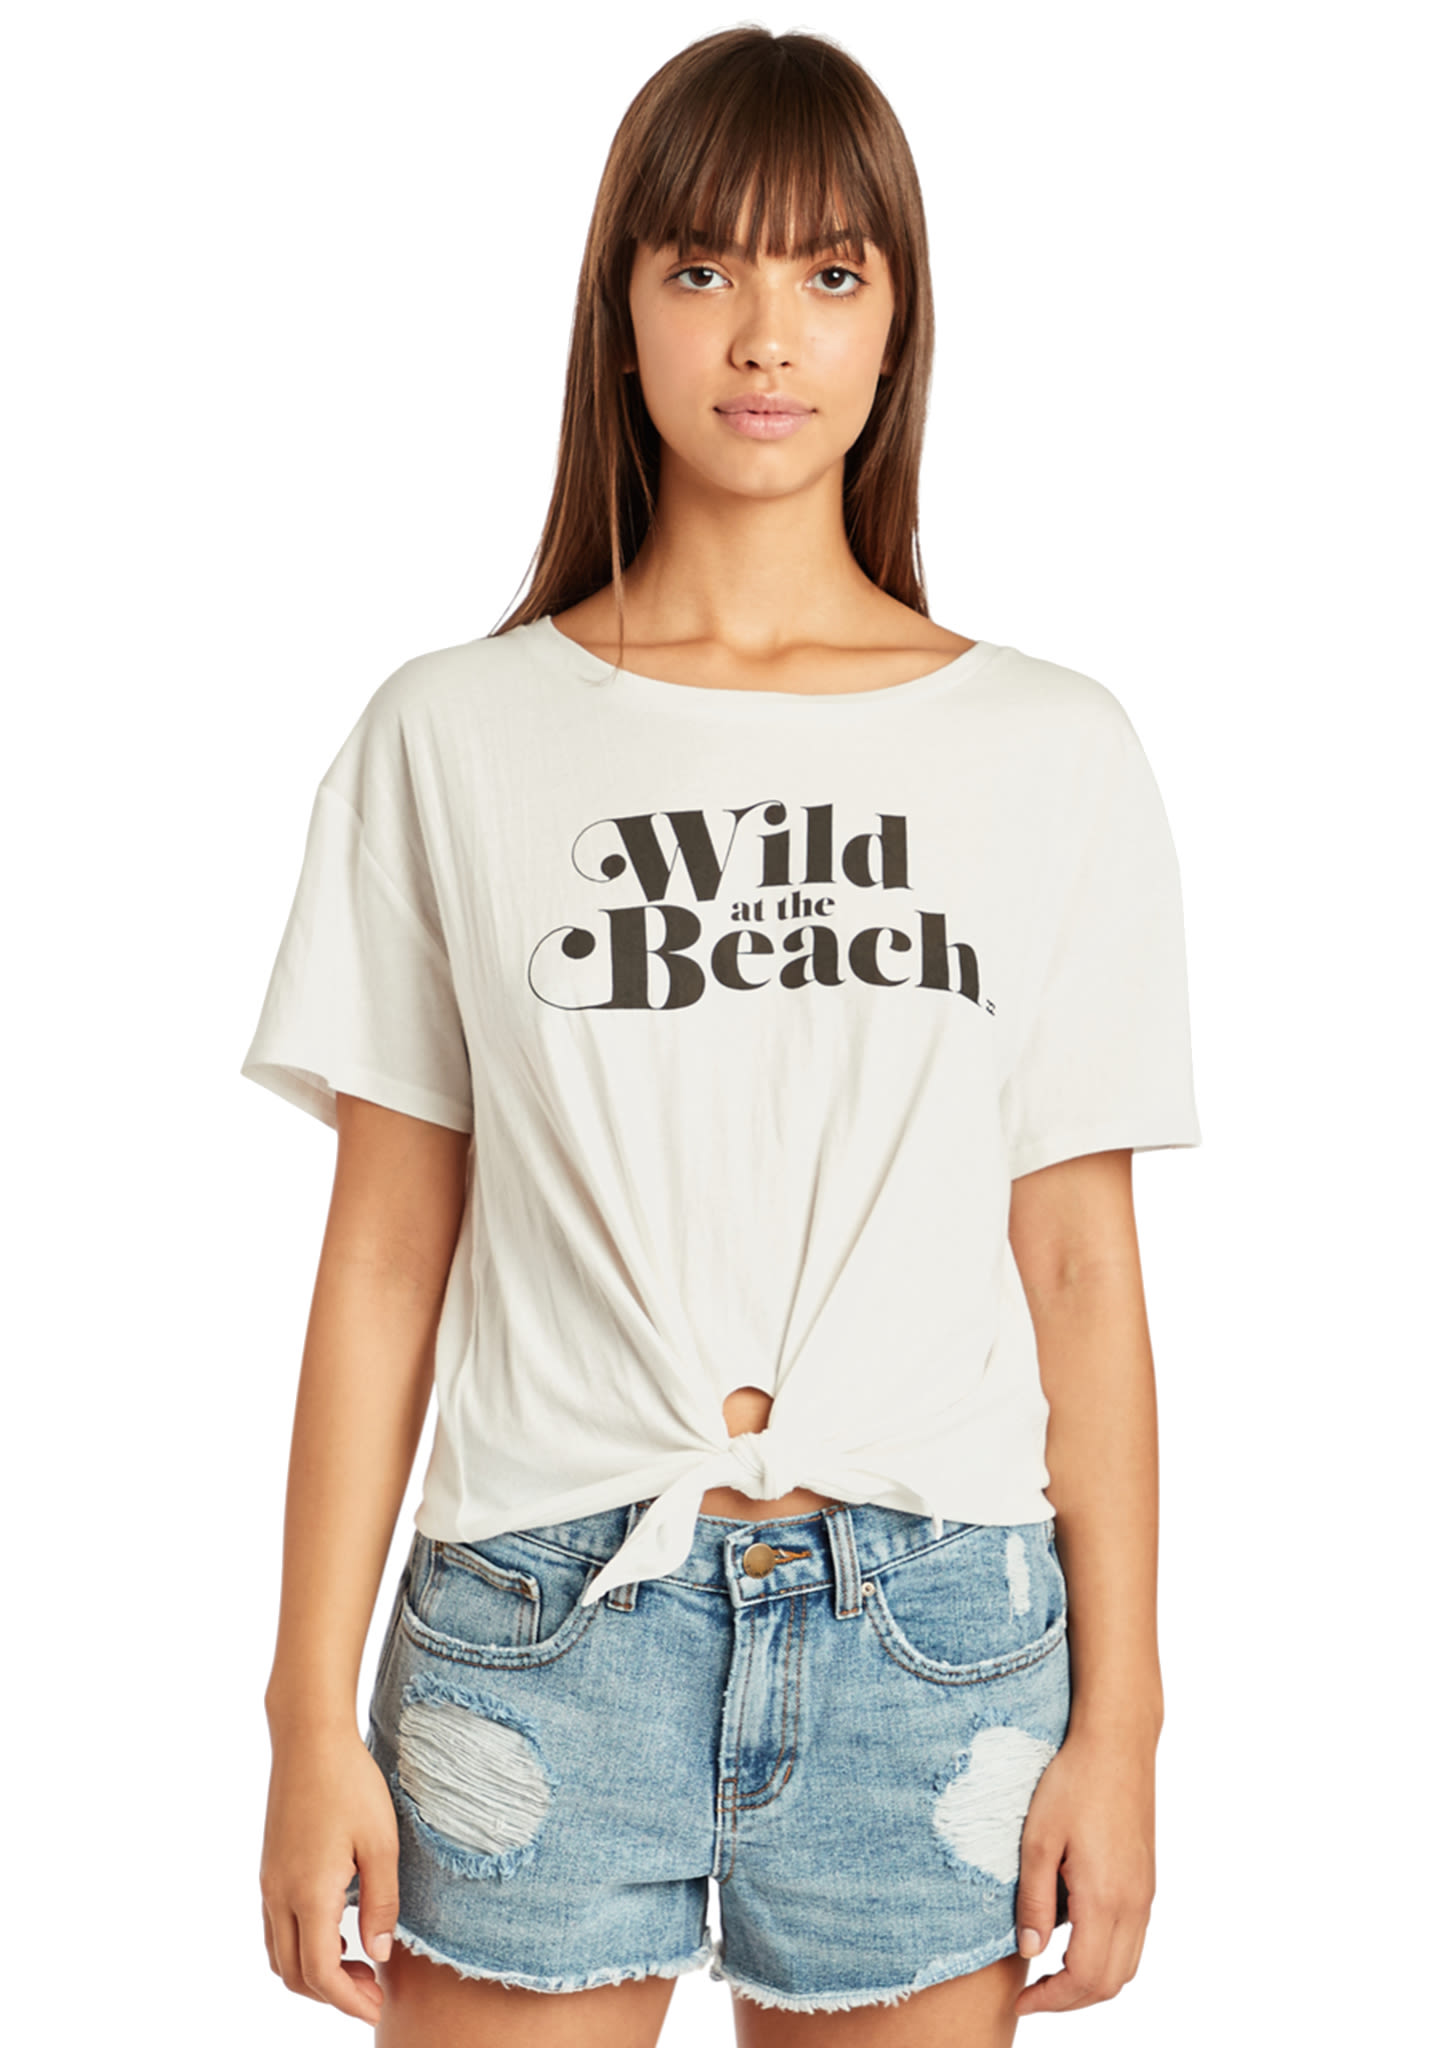 927f4b9a3 BILLABONG Beach Everyday - T-Shirt for Women - Beige - Planet Sports